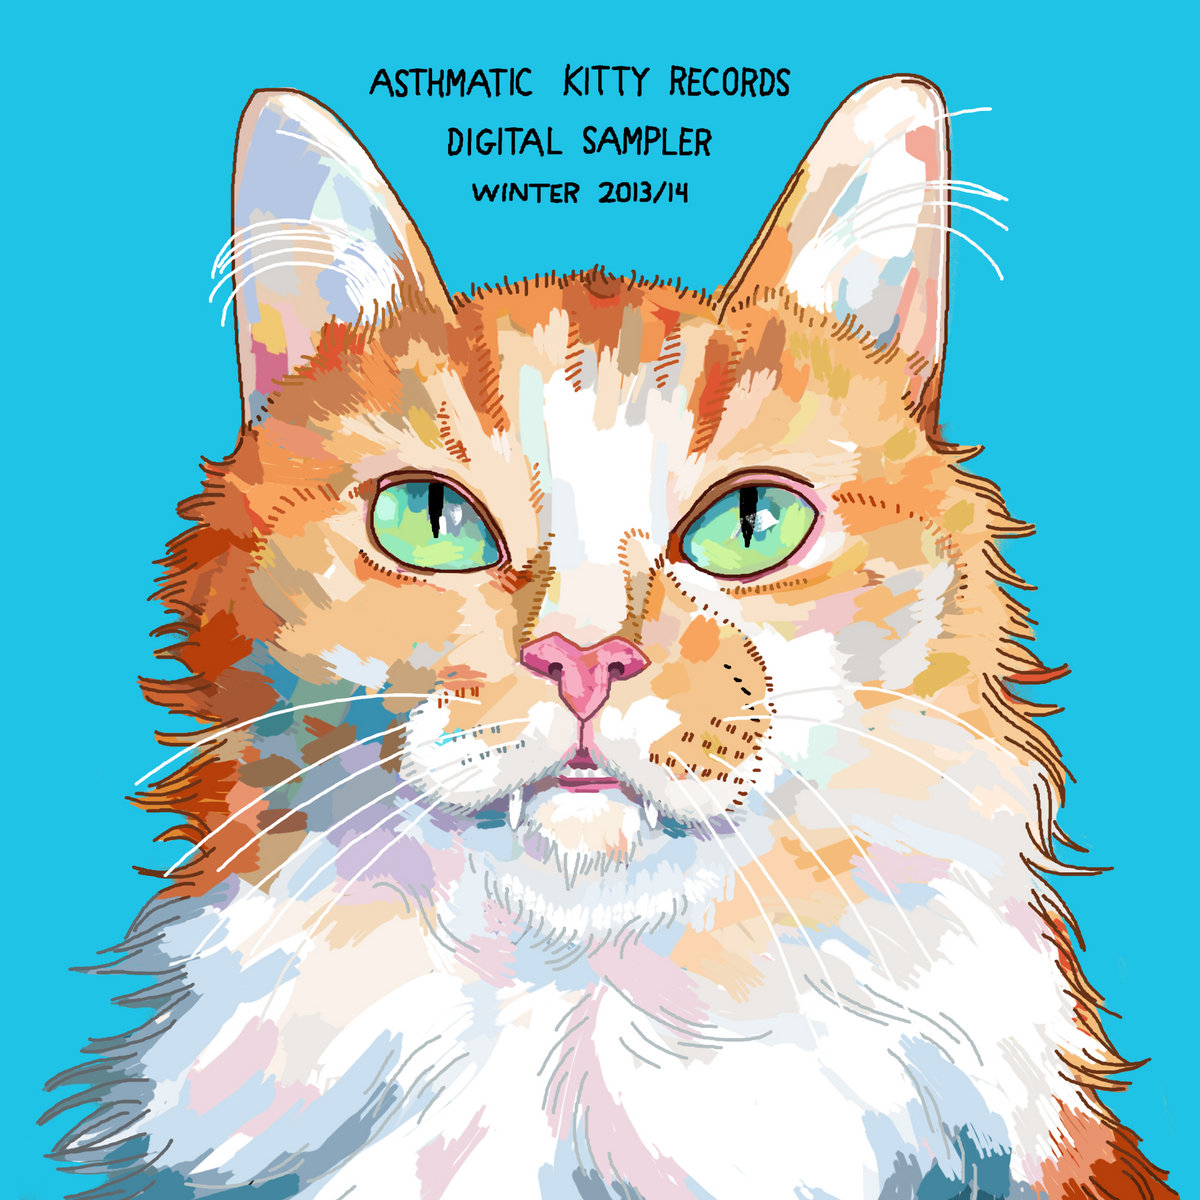 Asthmatic Kitty Records